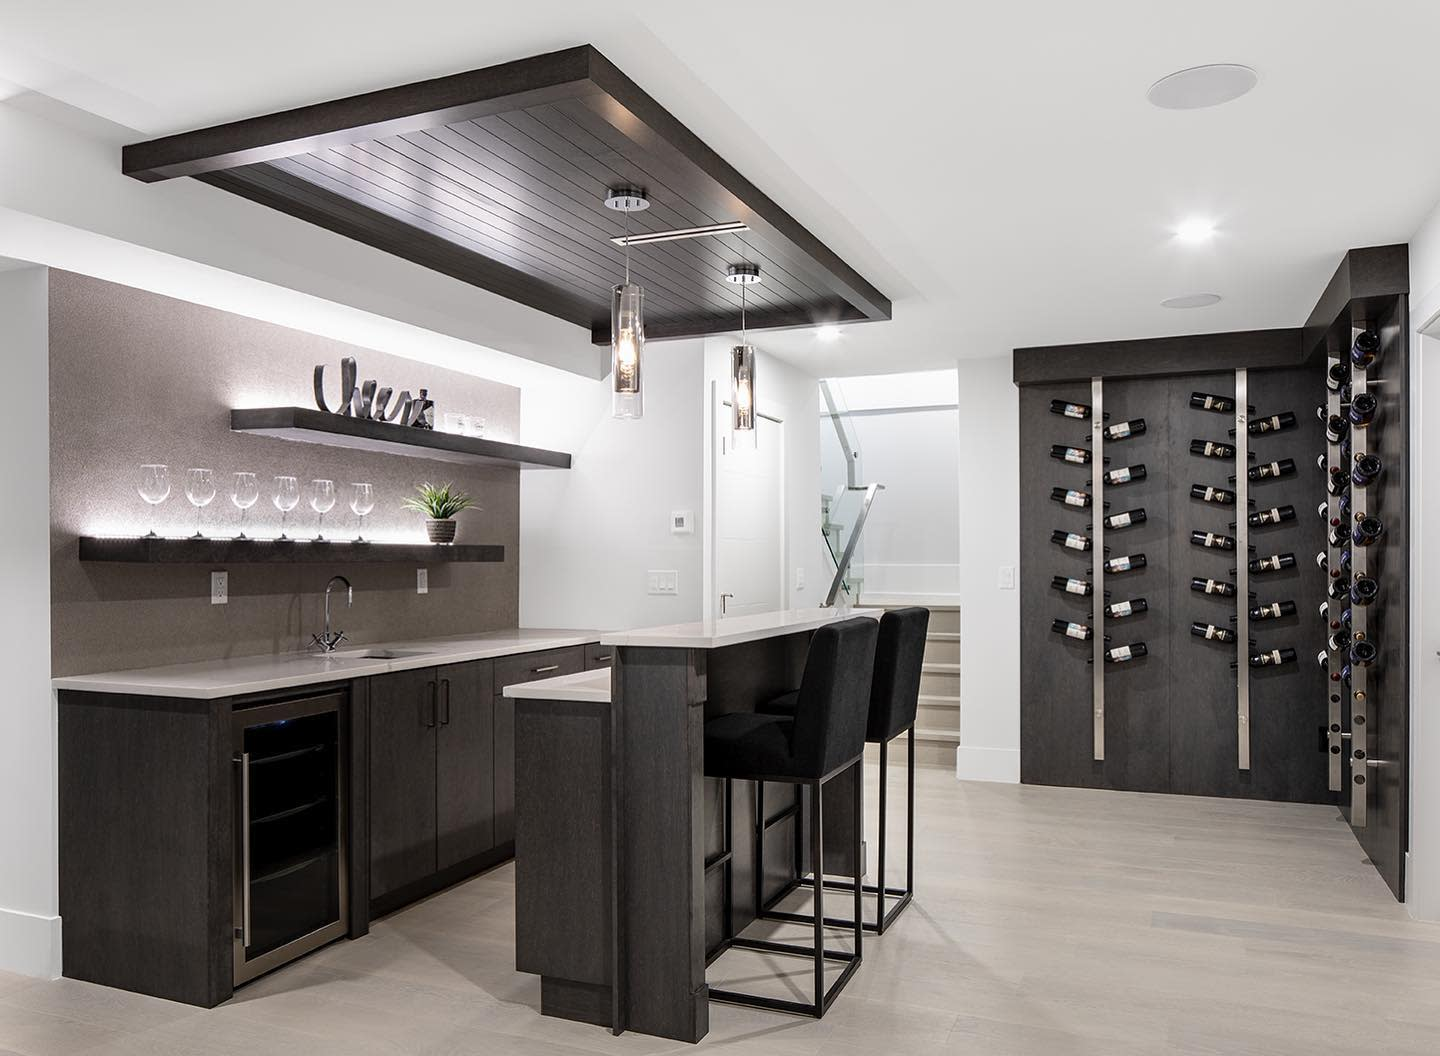 Modern Basement Kitchen Ideas -greenleafelectricalgroup